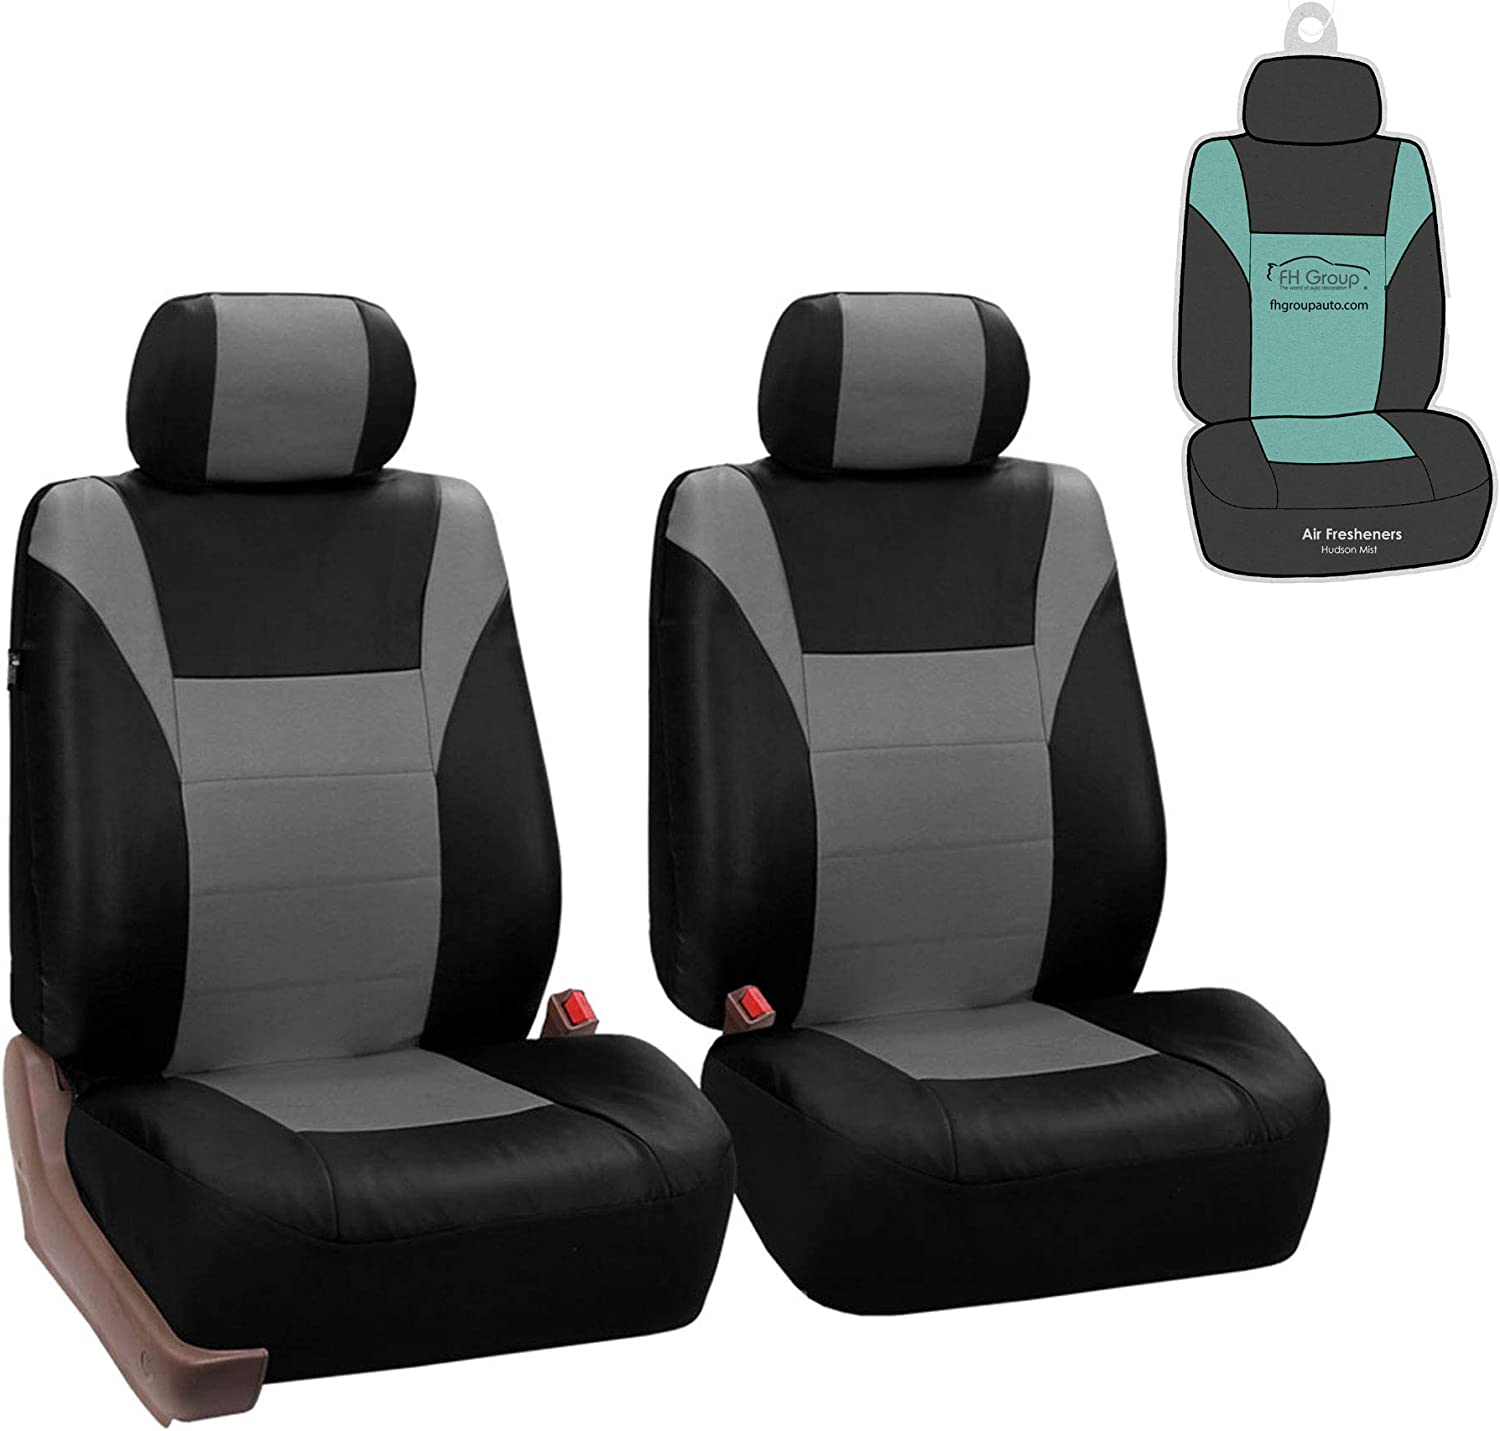 FH GROUP FH-PU003102 Racing PU Leather Car Pair Set Seat Covers (Airbag & Split Ready) Gray/Black Color - Fit Most Car, Truck, SUV, or Van